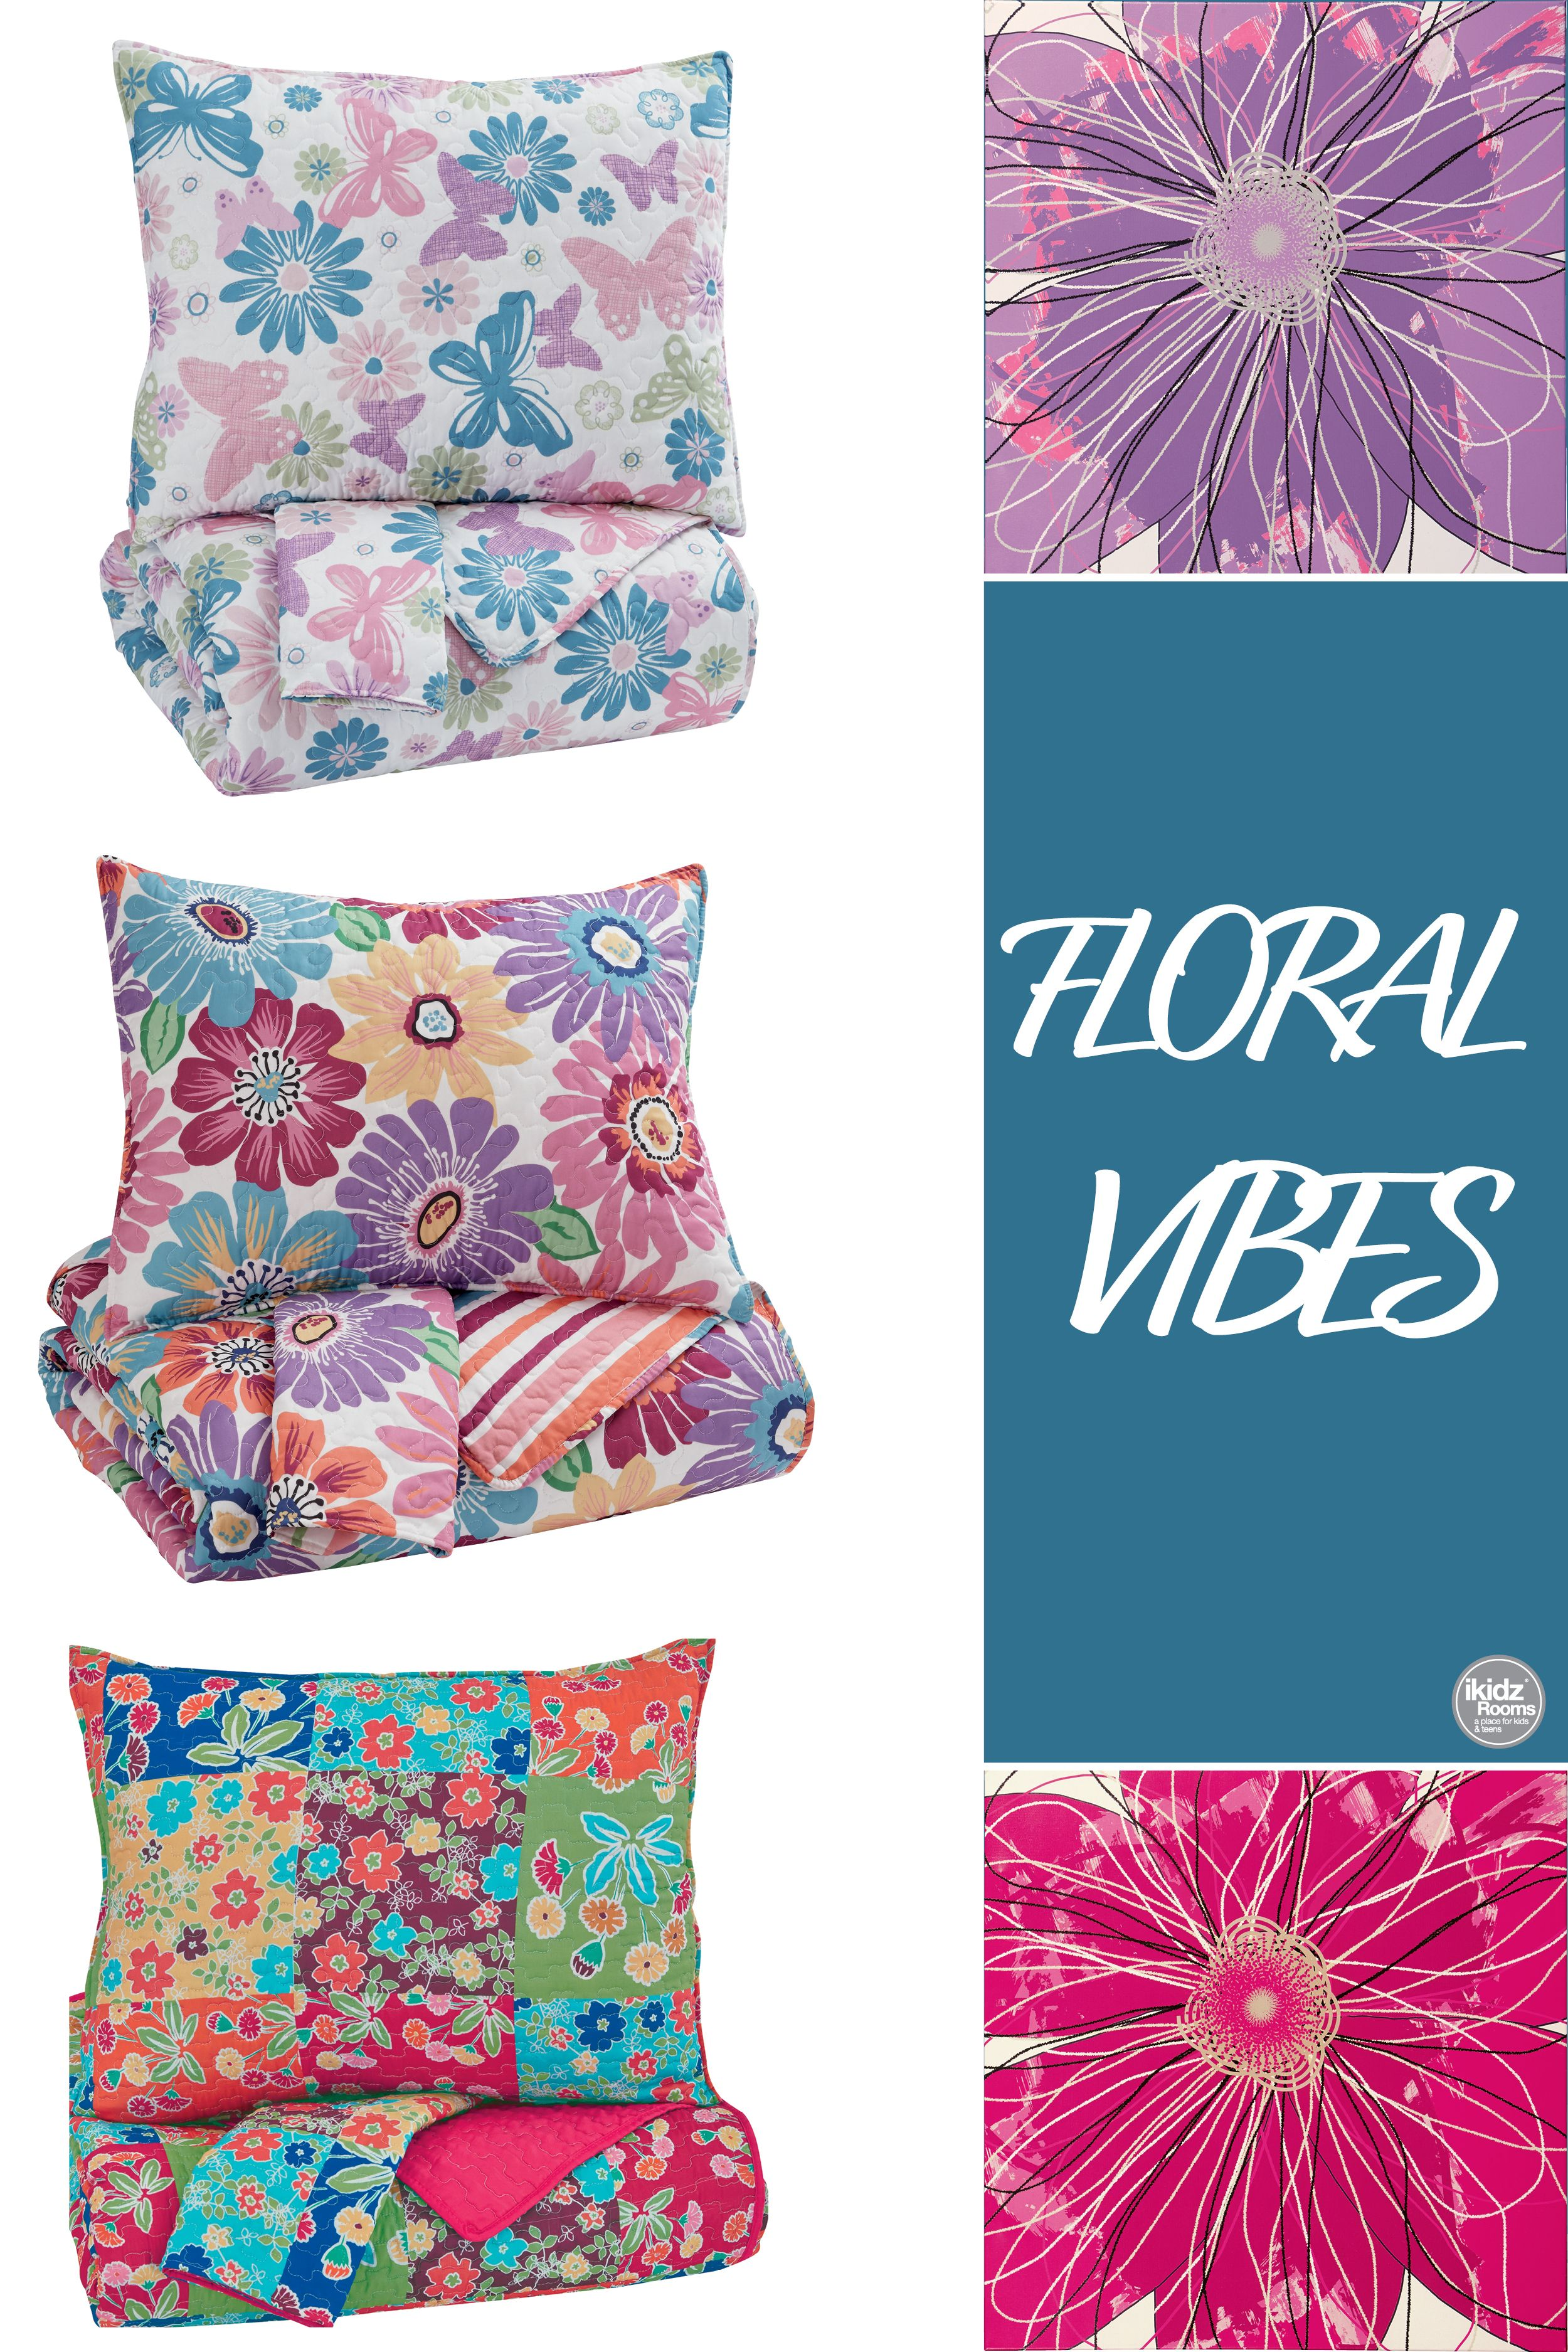 Jobeth Alexei And Belle Chase Multi Color Floral Patterned